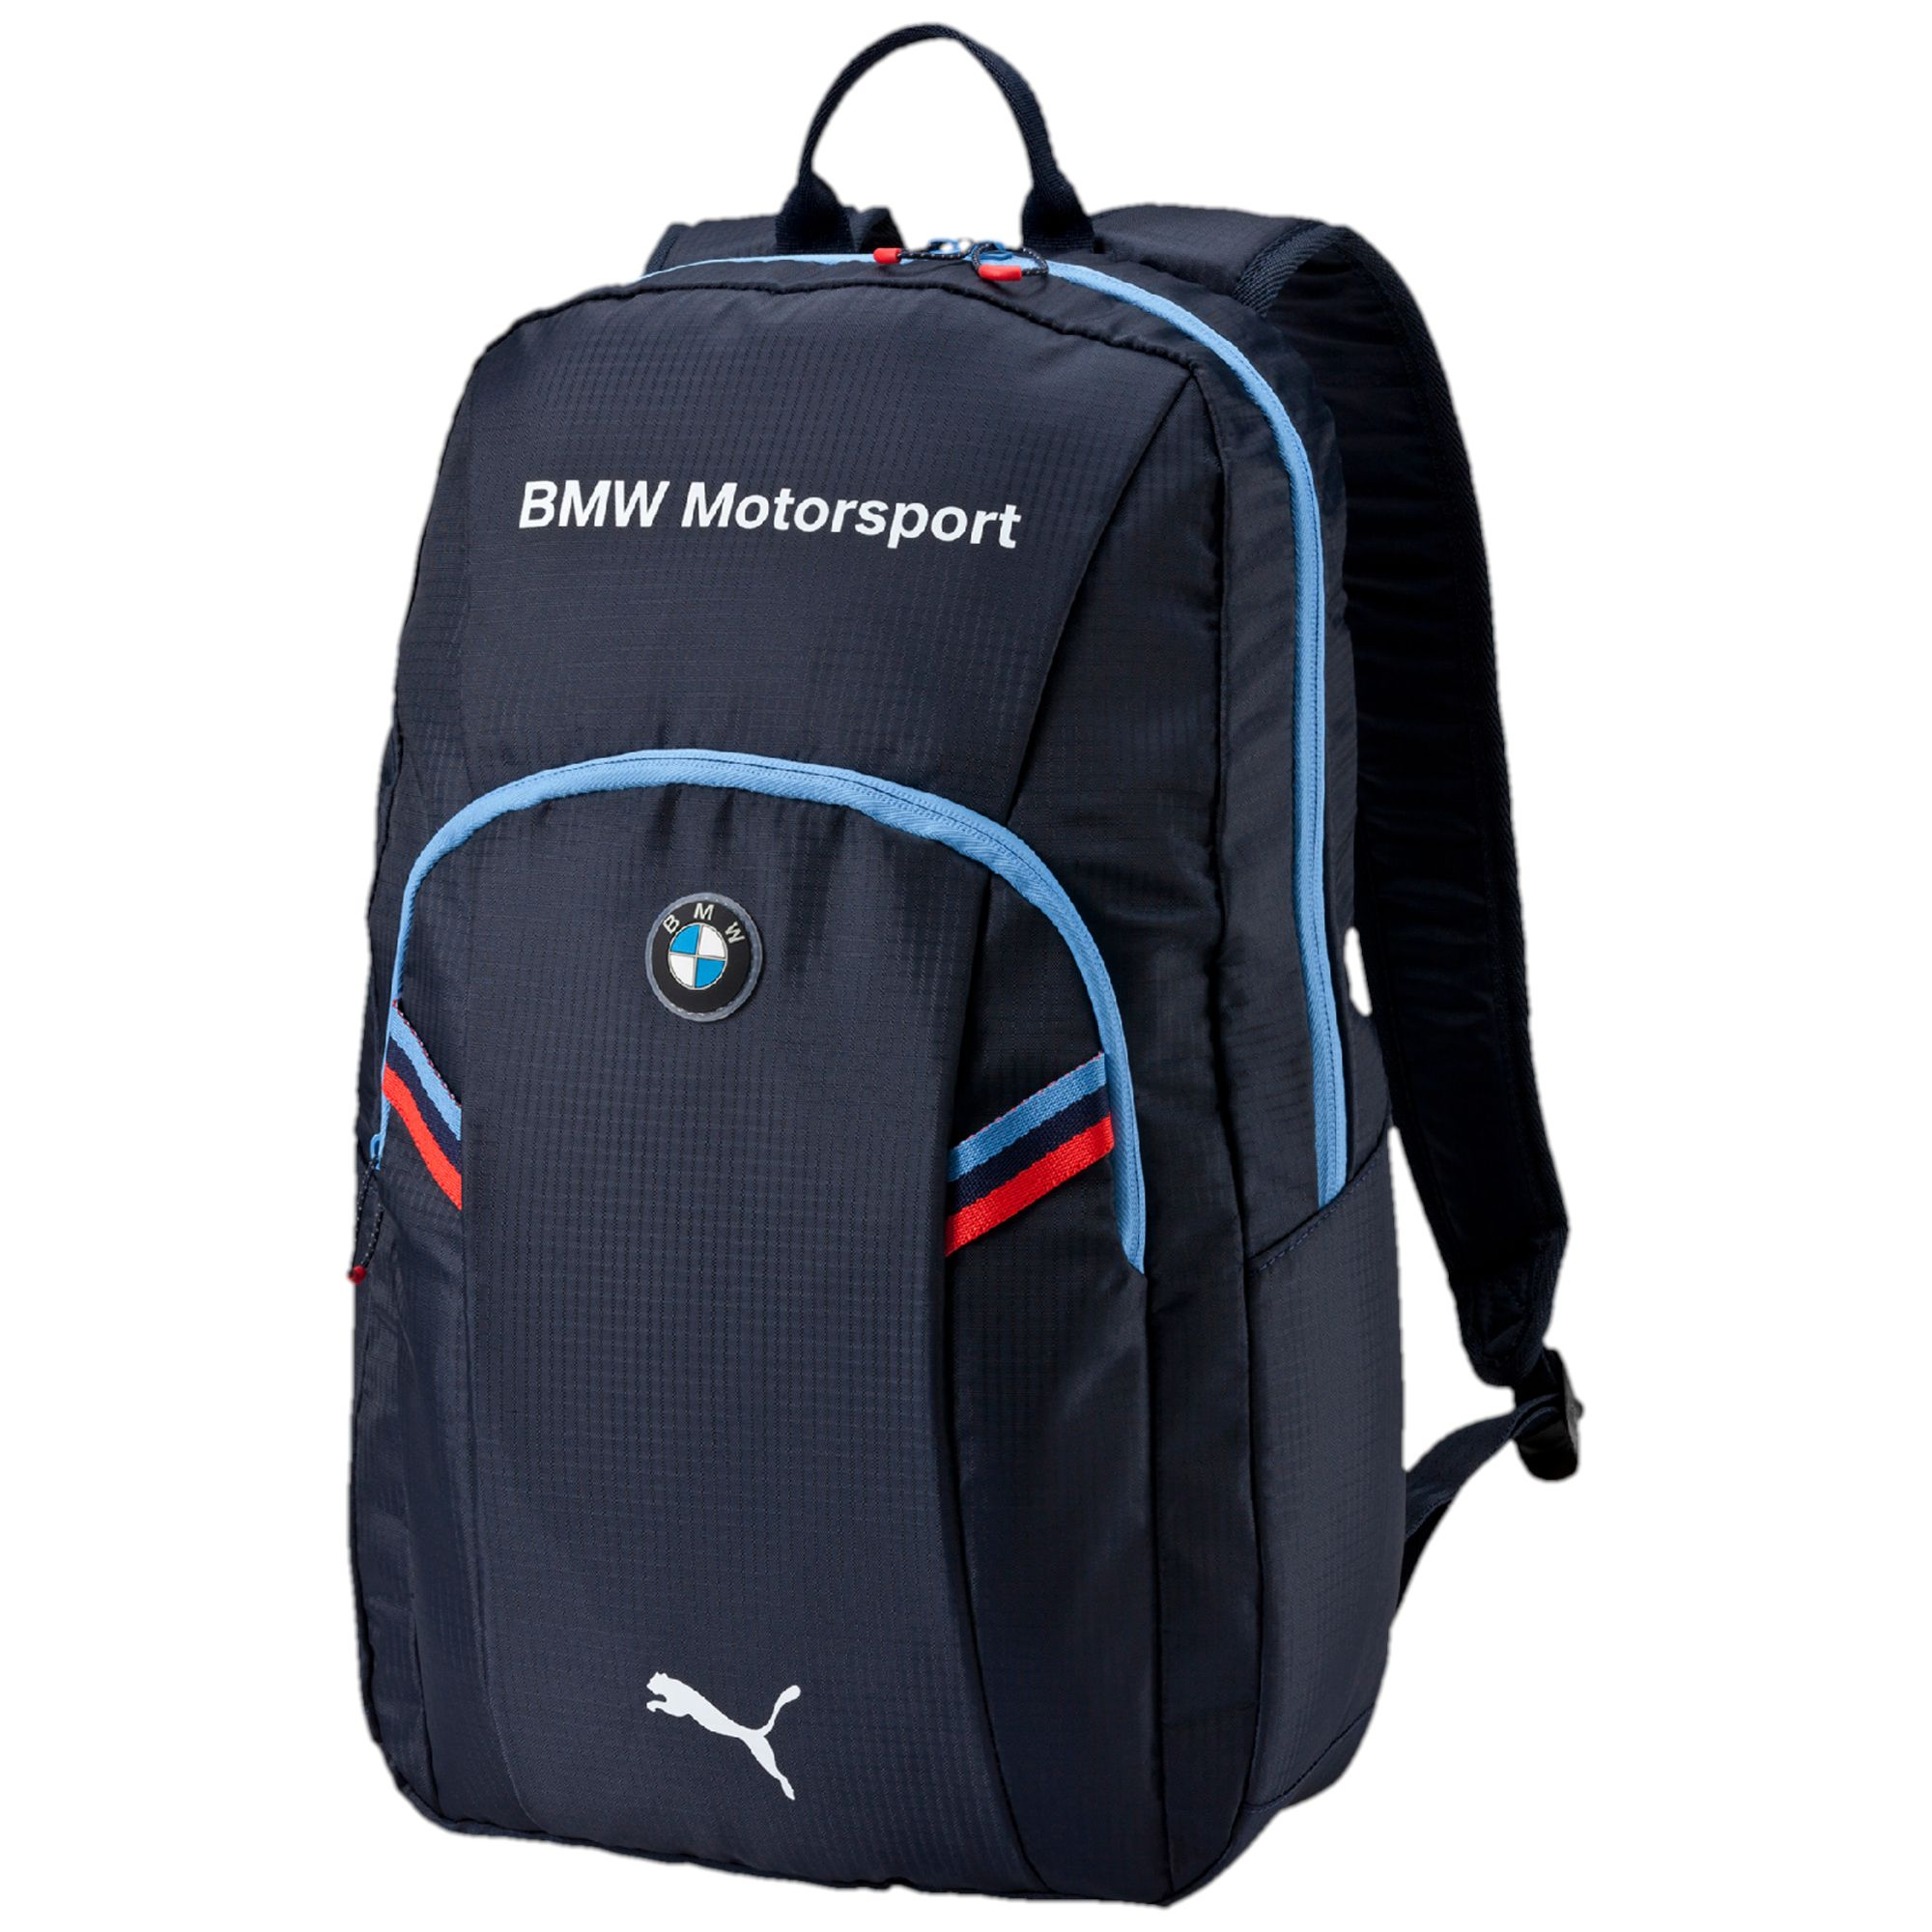 puma bmw motorsport rucksack accessoires rucksack. Black Bedroom Furniture Sets. Home Design Ideas